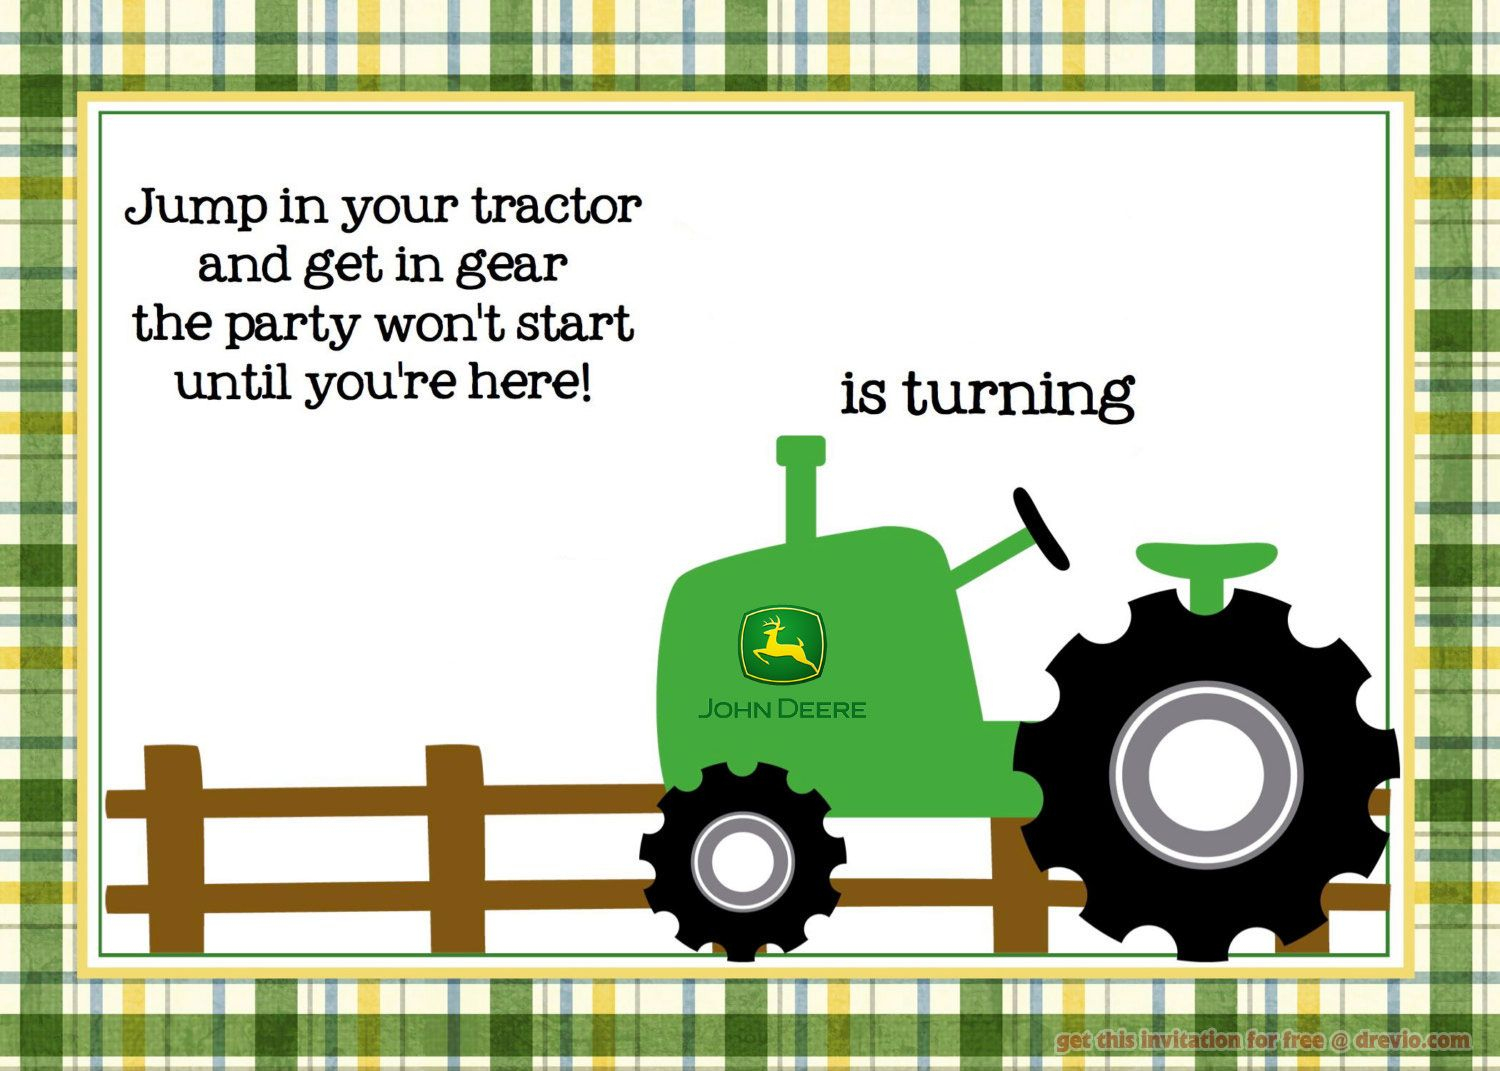 Free Printable John Deere Tractor Birthday - Free Printable John Deere Baby Shower Invitations